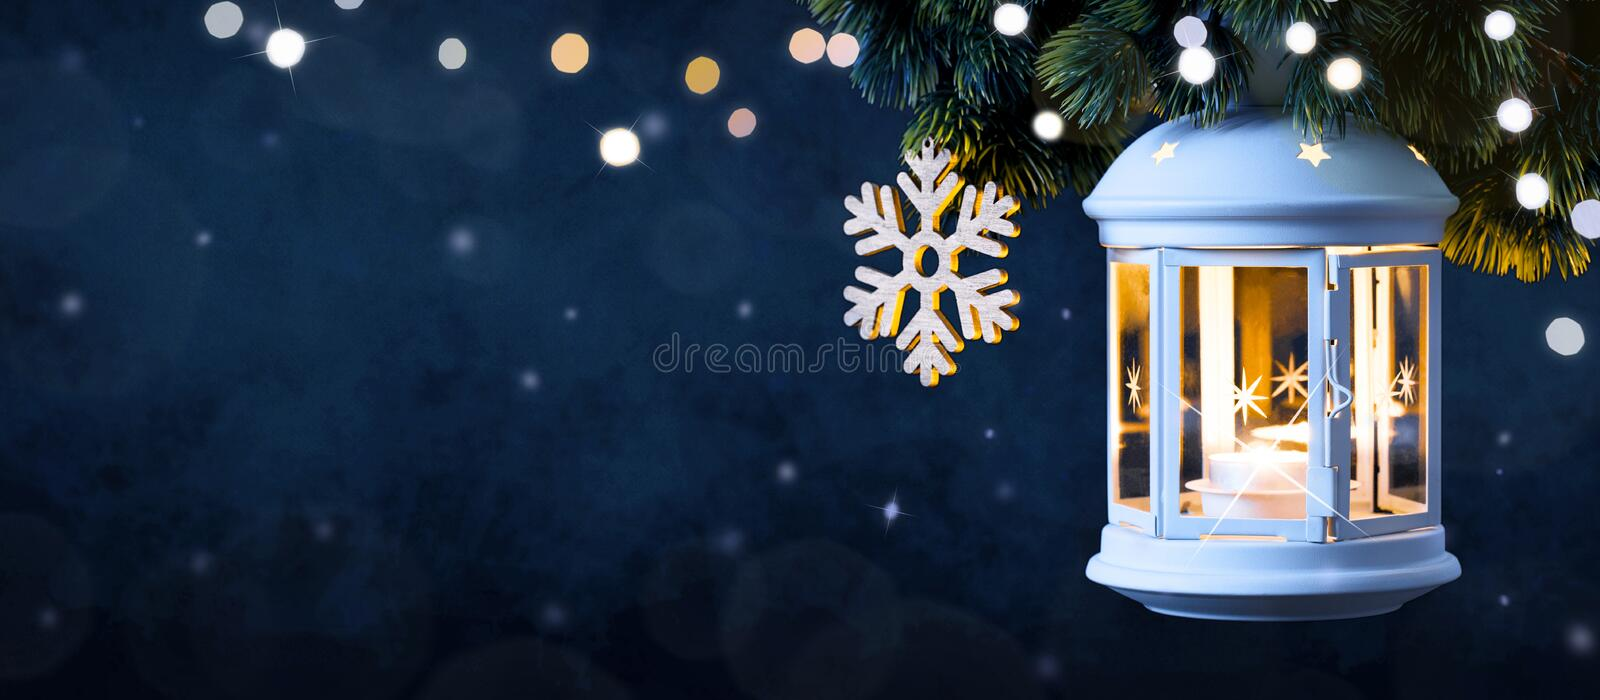 Christmas Lantern On Snow With Pine Branch. Happy New Year card royalty free stock photos